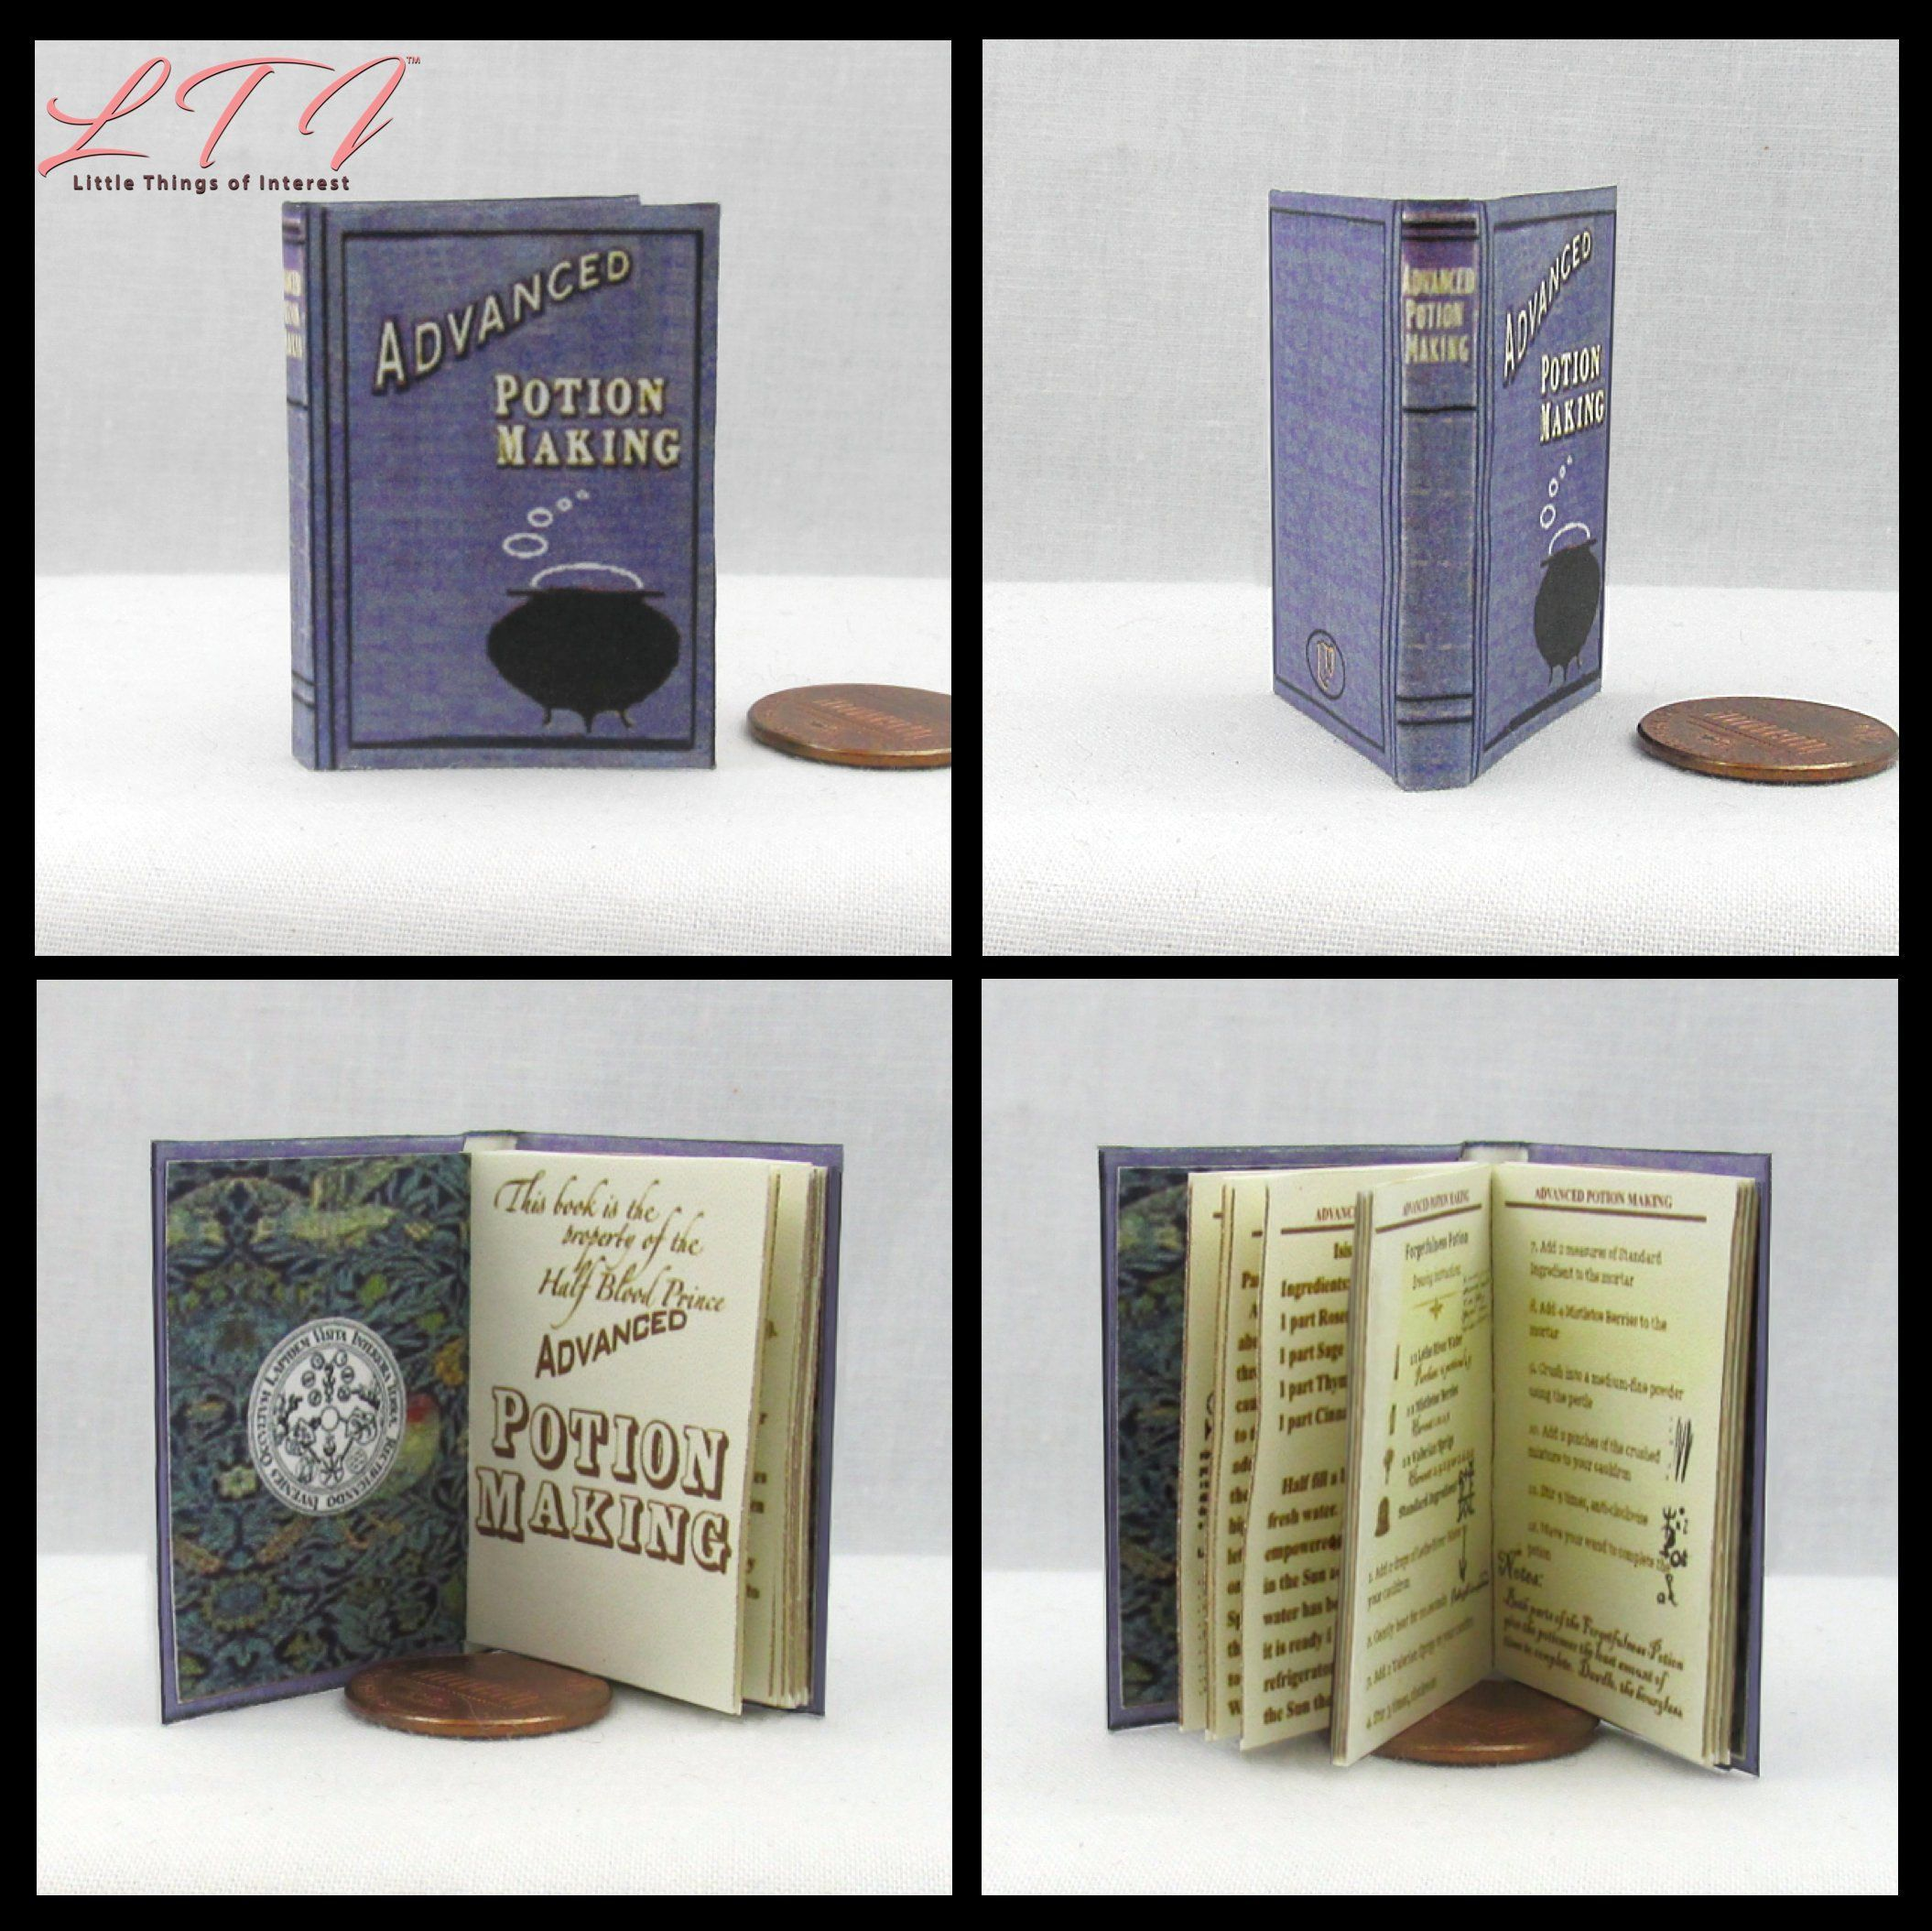 1:6 SCALE MINIATURE BOOK HARRY POTTER SORCERERS STONE PLAYSCALE BARBIE